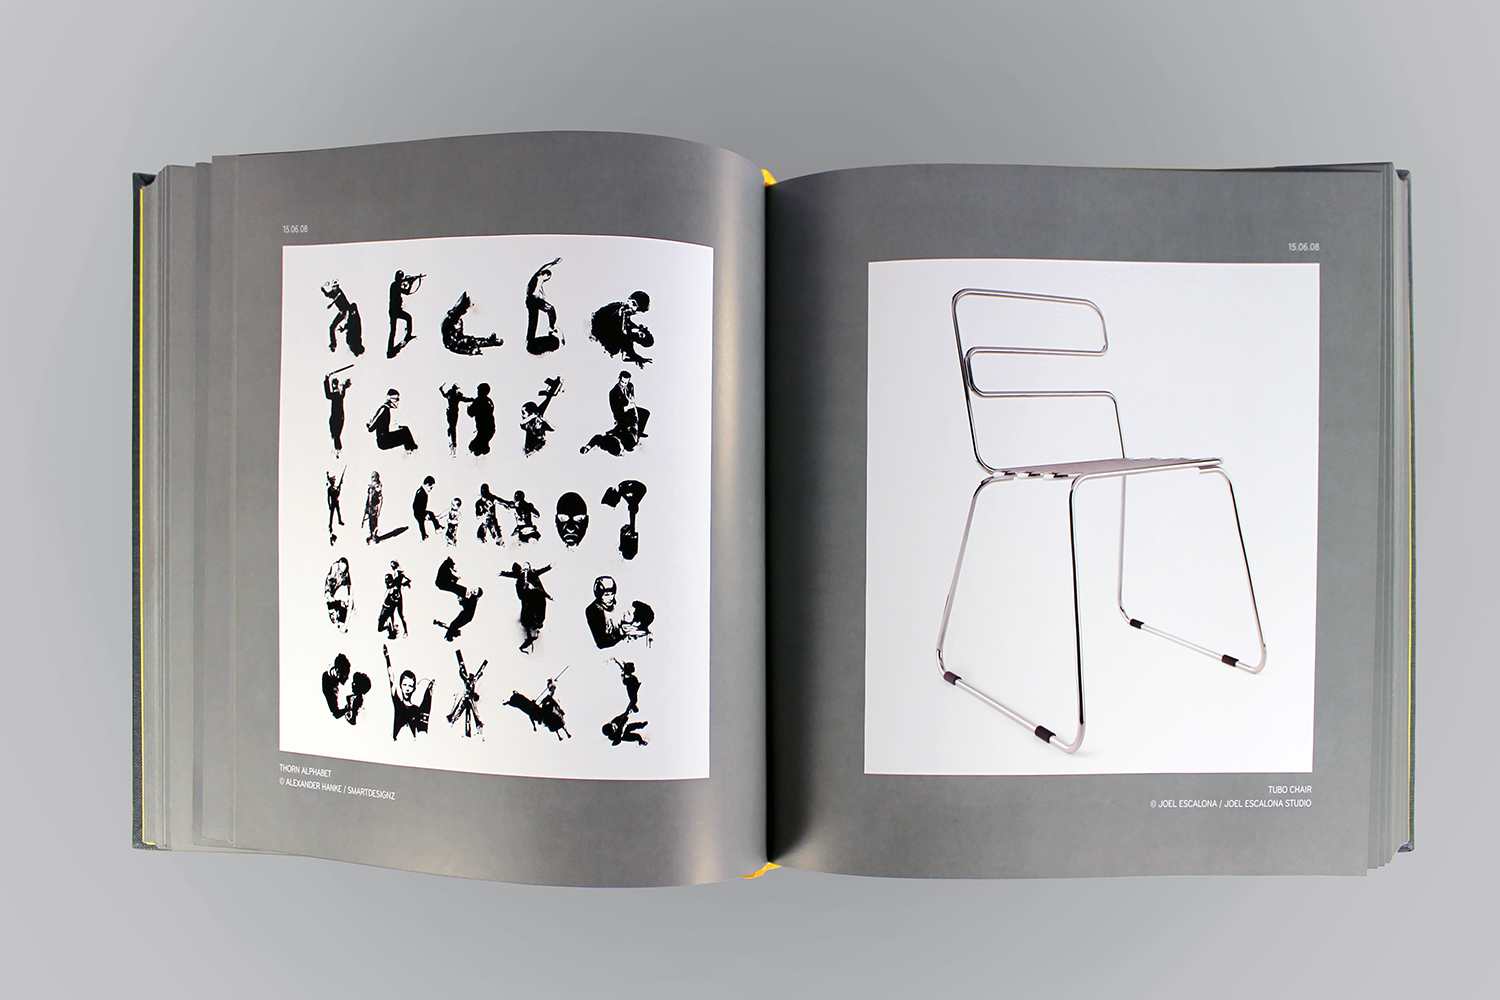 Design And Design Book Of The Year _ 9.JPG